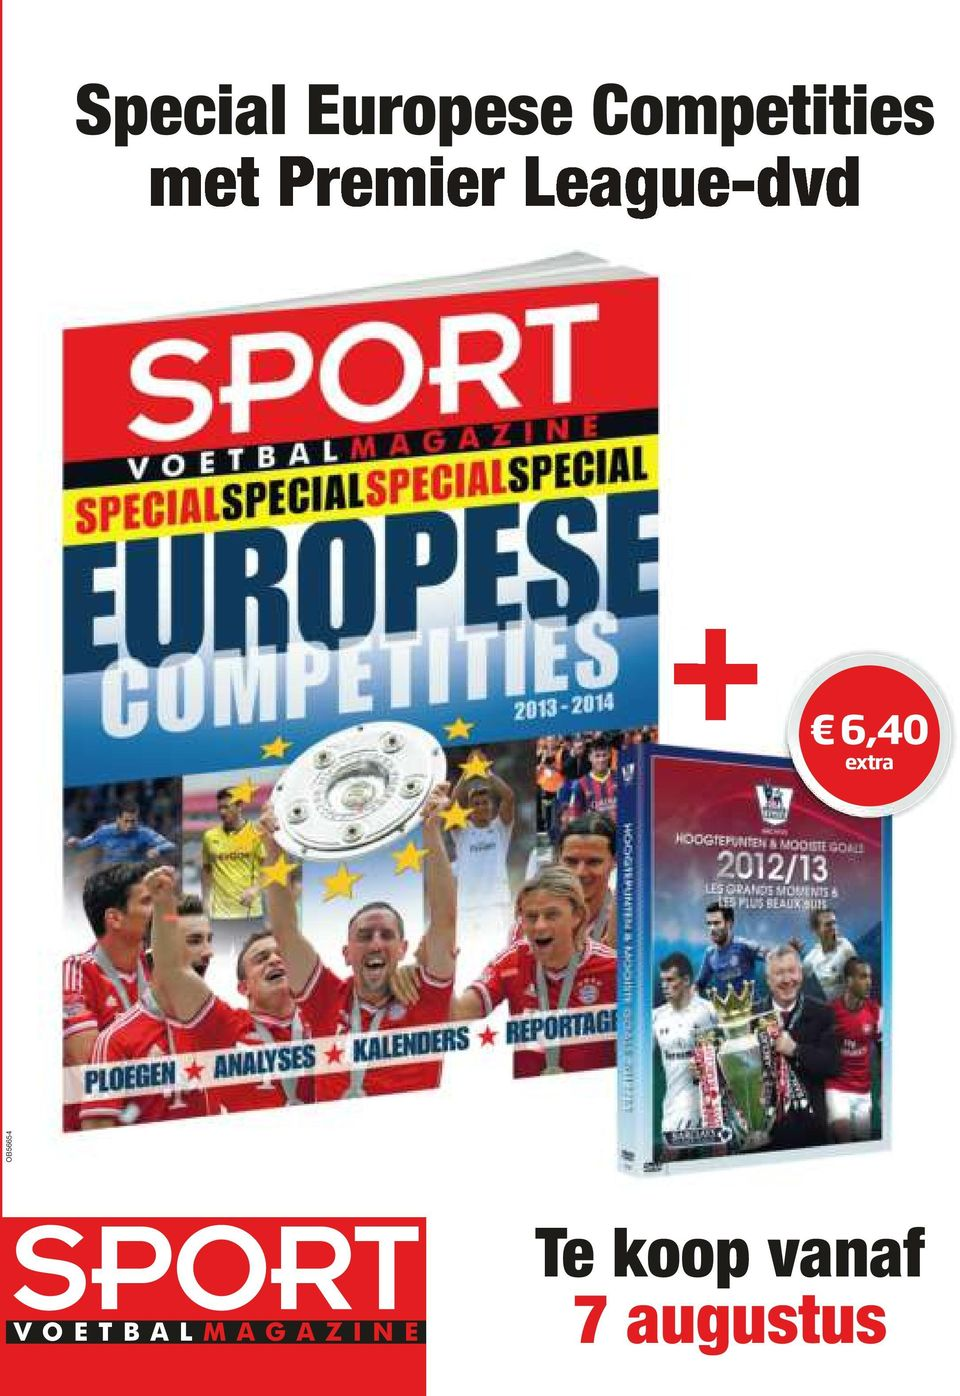 League-dvd + 6,40 extra